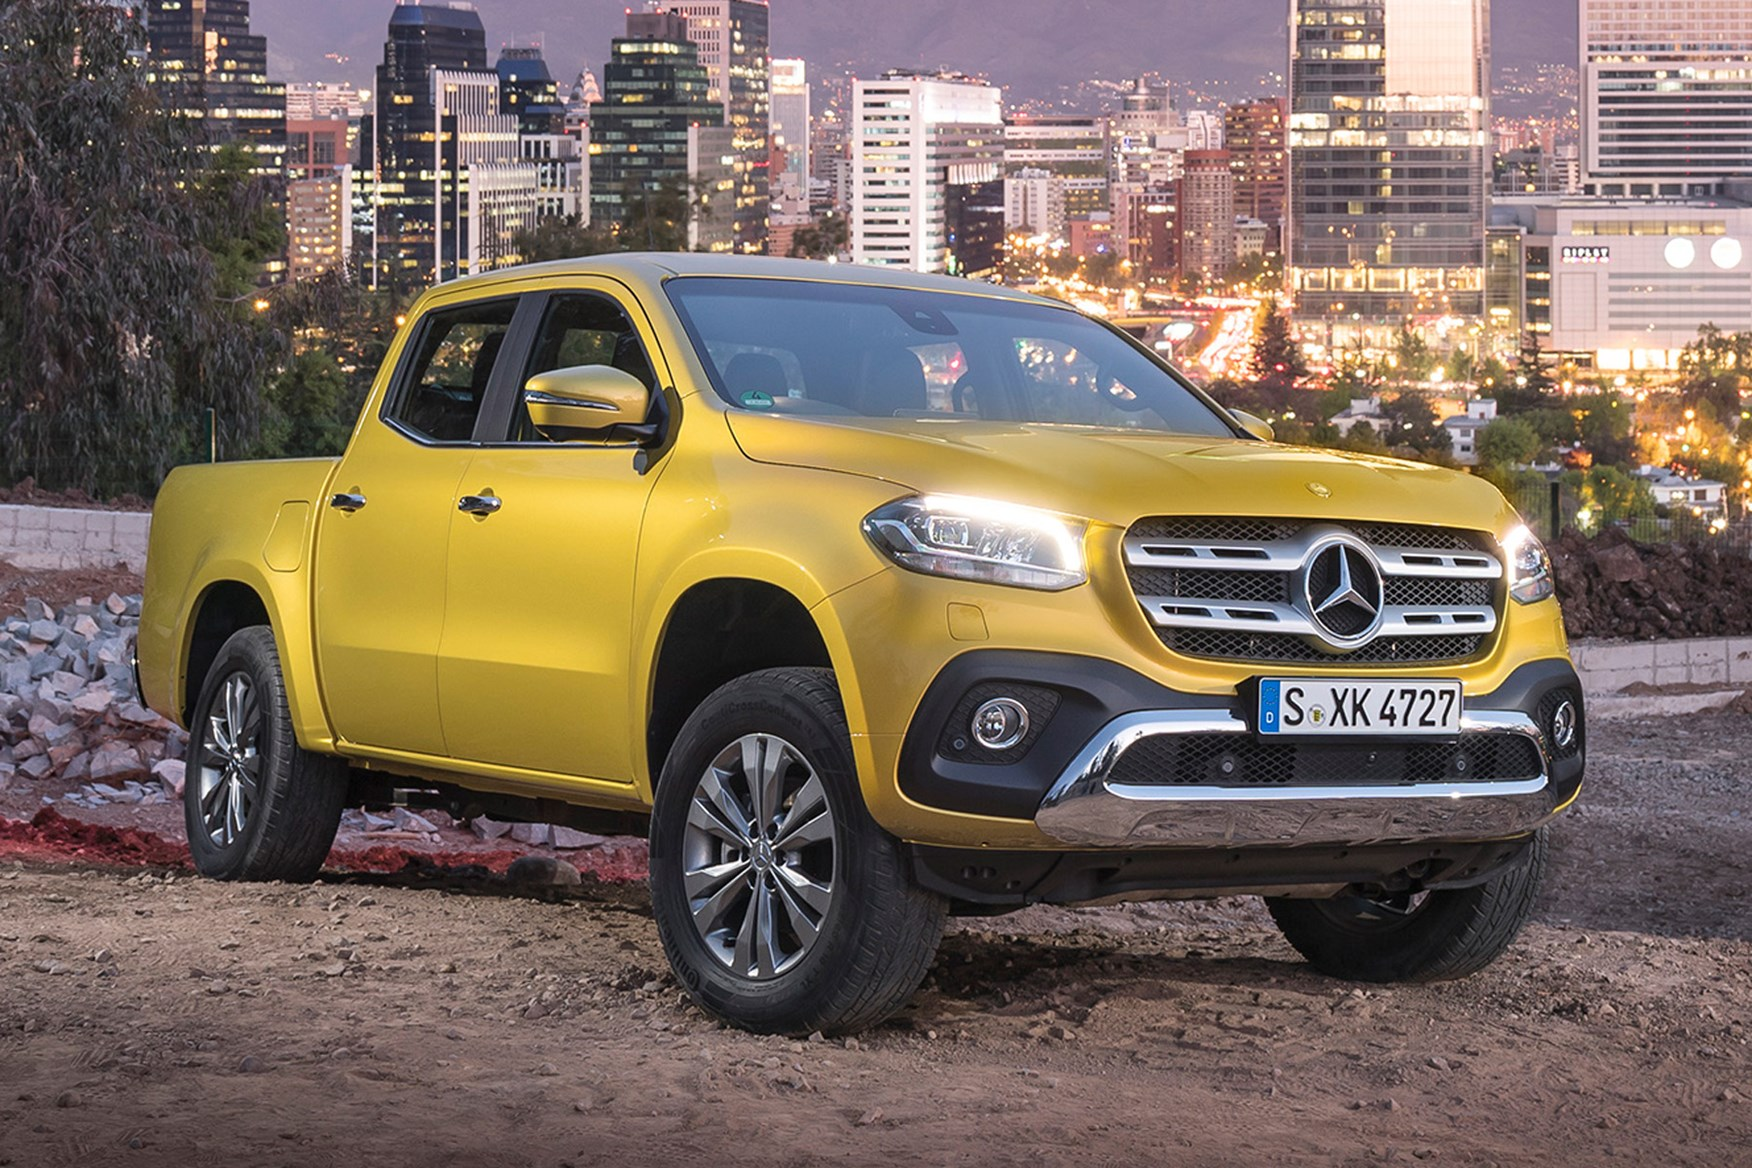 Mercedes-Benz X-Class full review on Parkers Vans - exterior